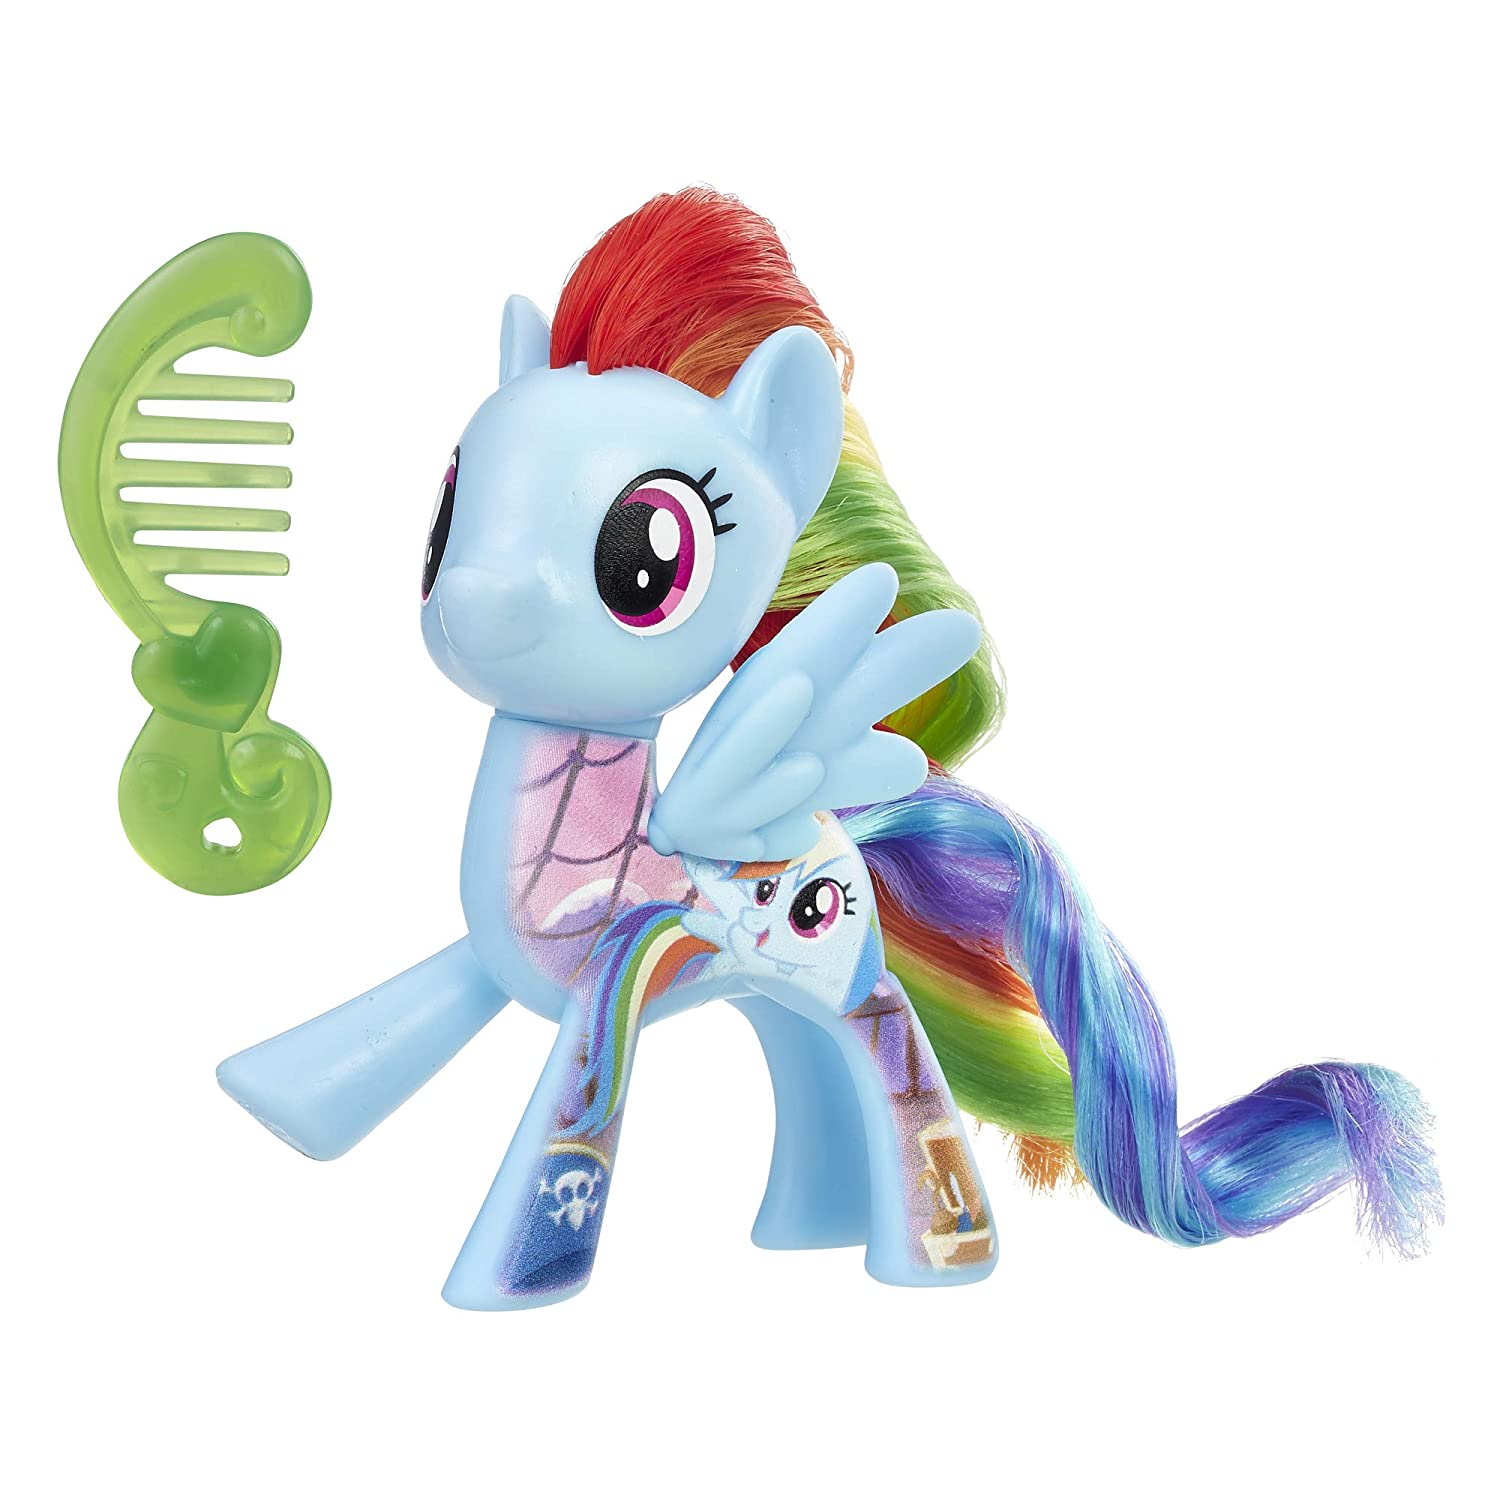 Hasbro Canada Corporation E0728AS00 My Little Pony: The Movie All About Rainbow Dash